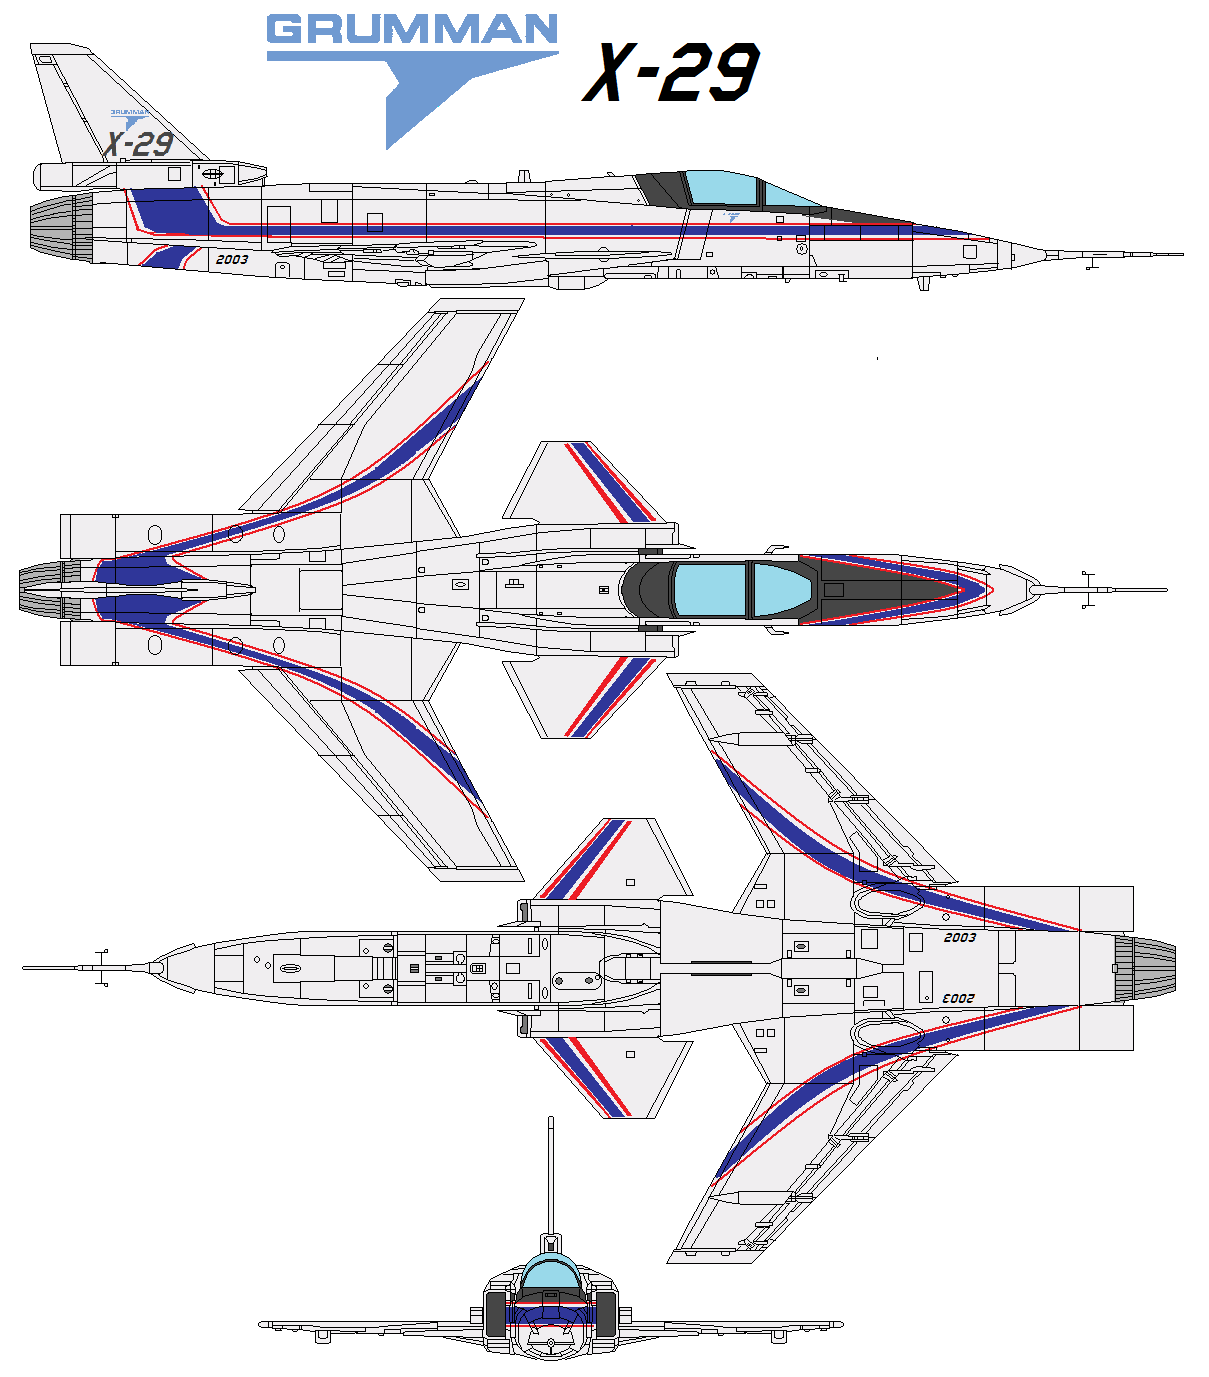 an analysis of the book the grumman x 29 by steve pace Grumman x-29 by pace i have chosen to do my book report on the book the grumman x-29, by steve pace research paper topics, free essays: rogerian.